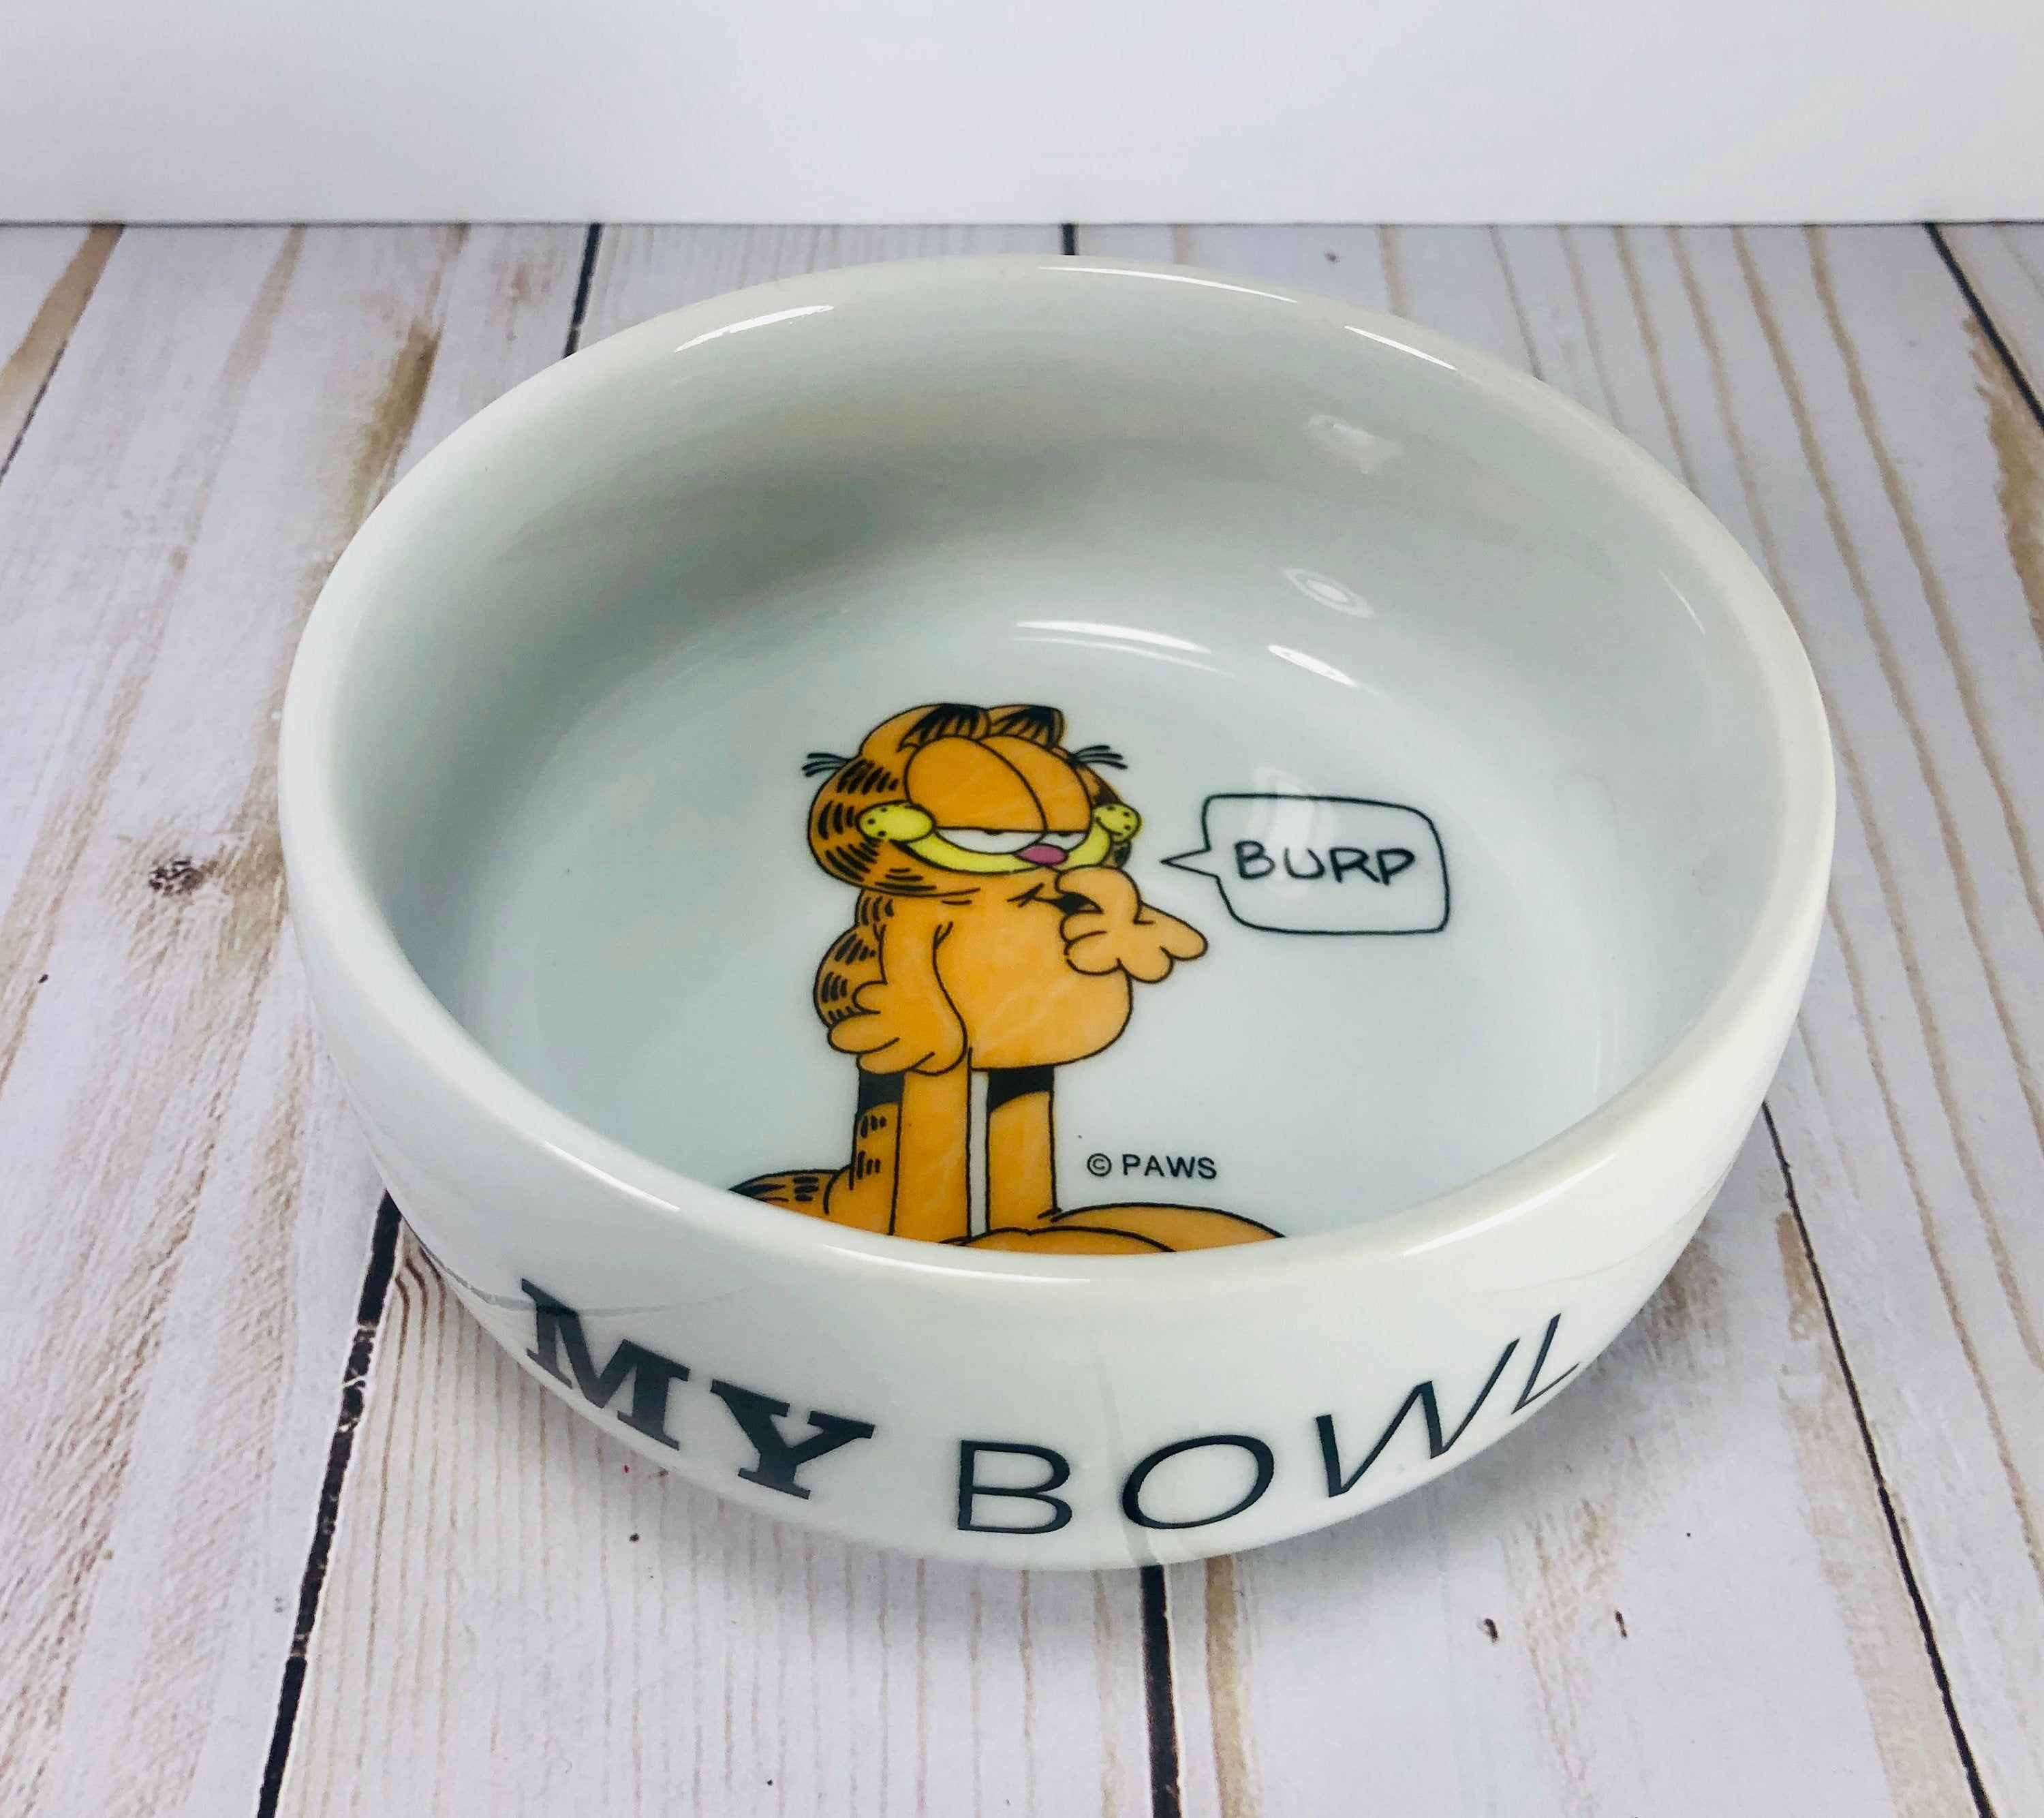 Vtg Garfield My Bowl Pet Food Dish PAWS Ceramic Pet food